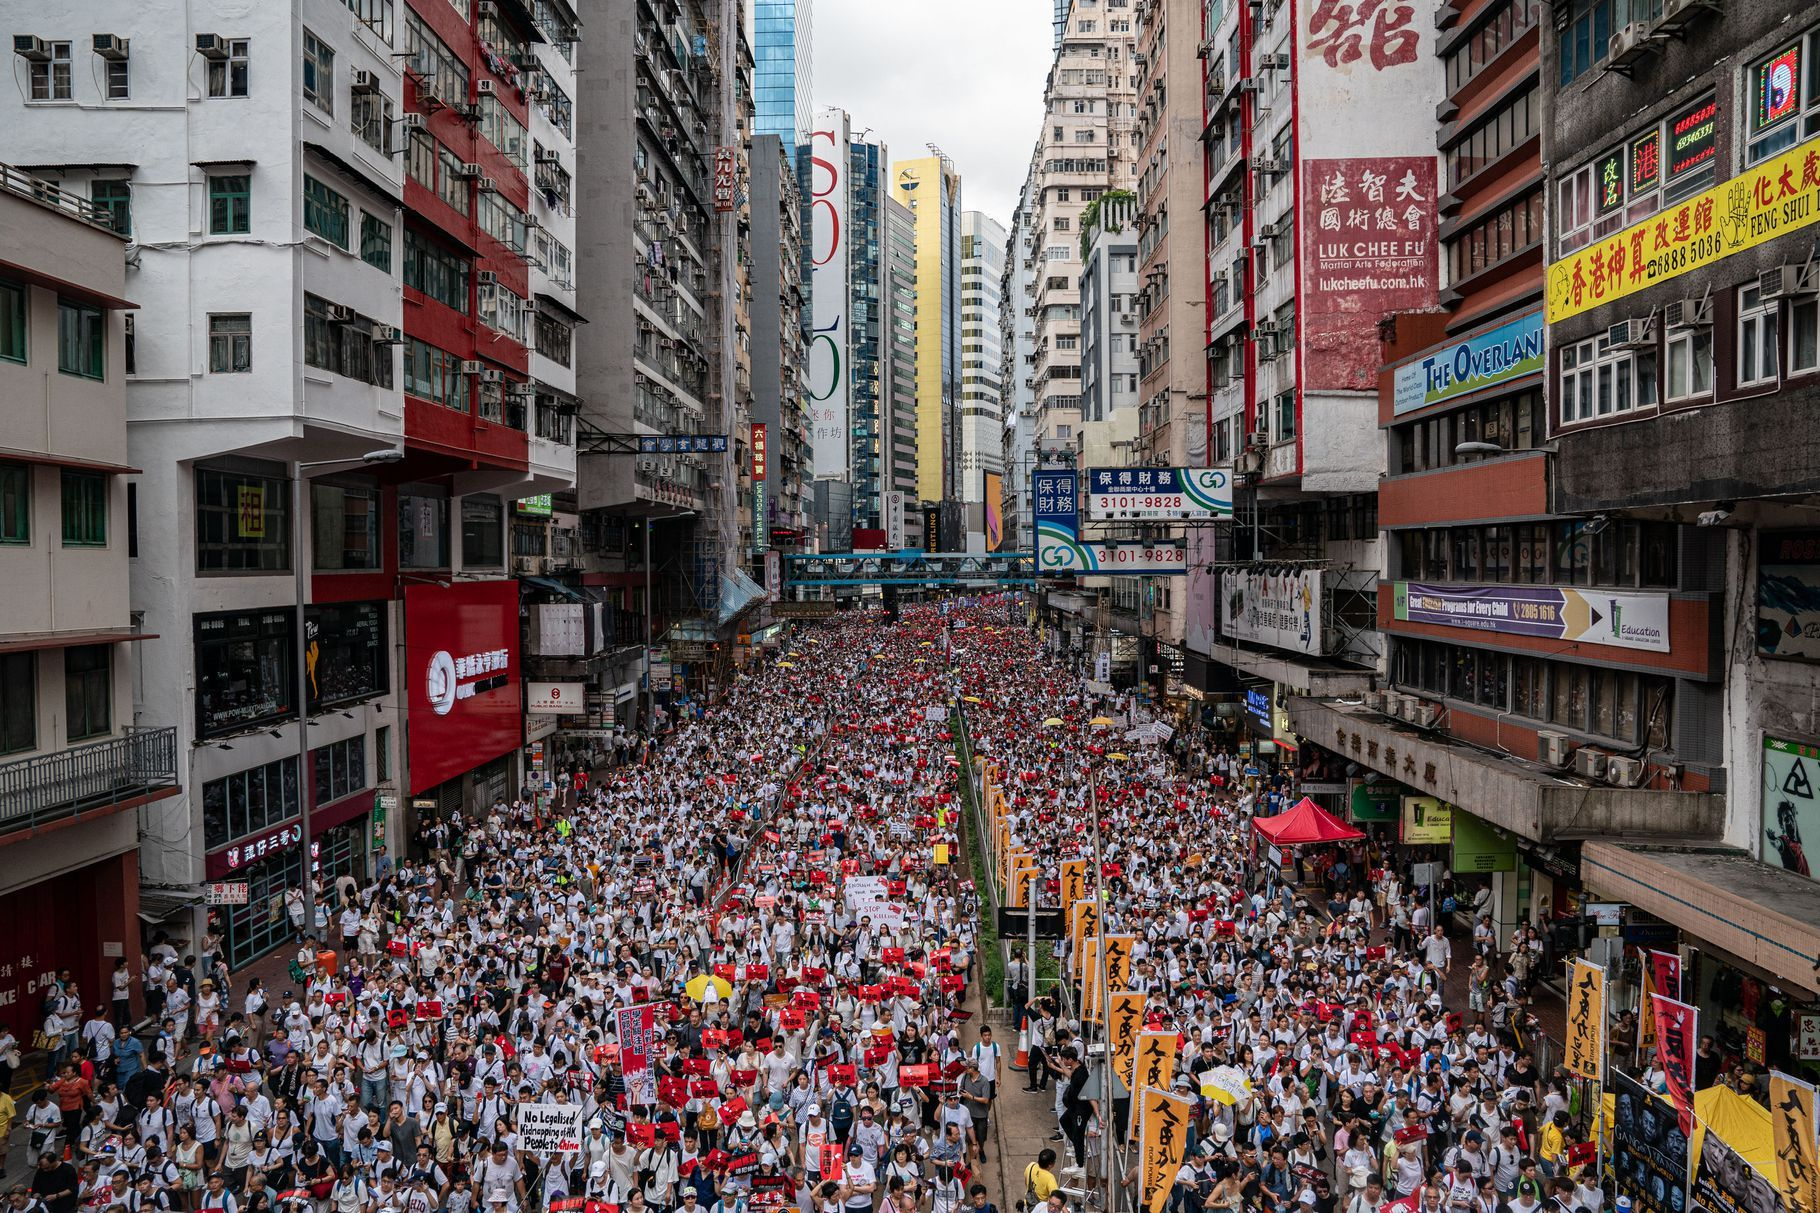 Hundreds of thousands attend protest in Hong Kong over